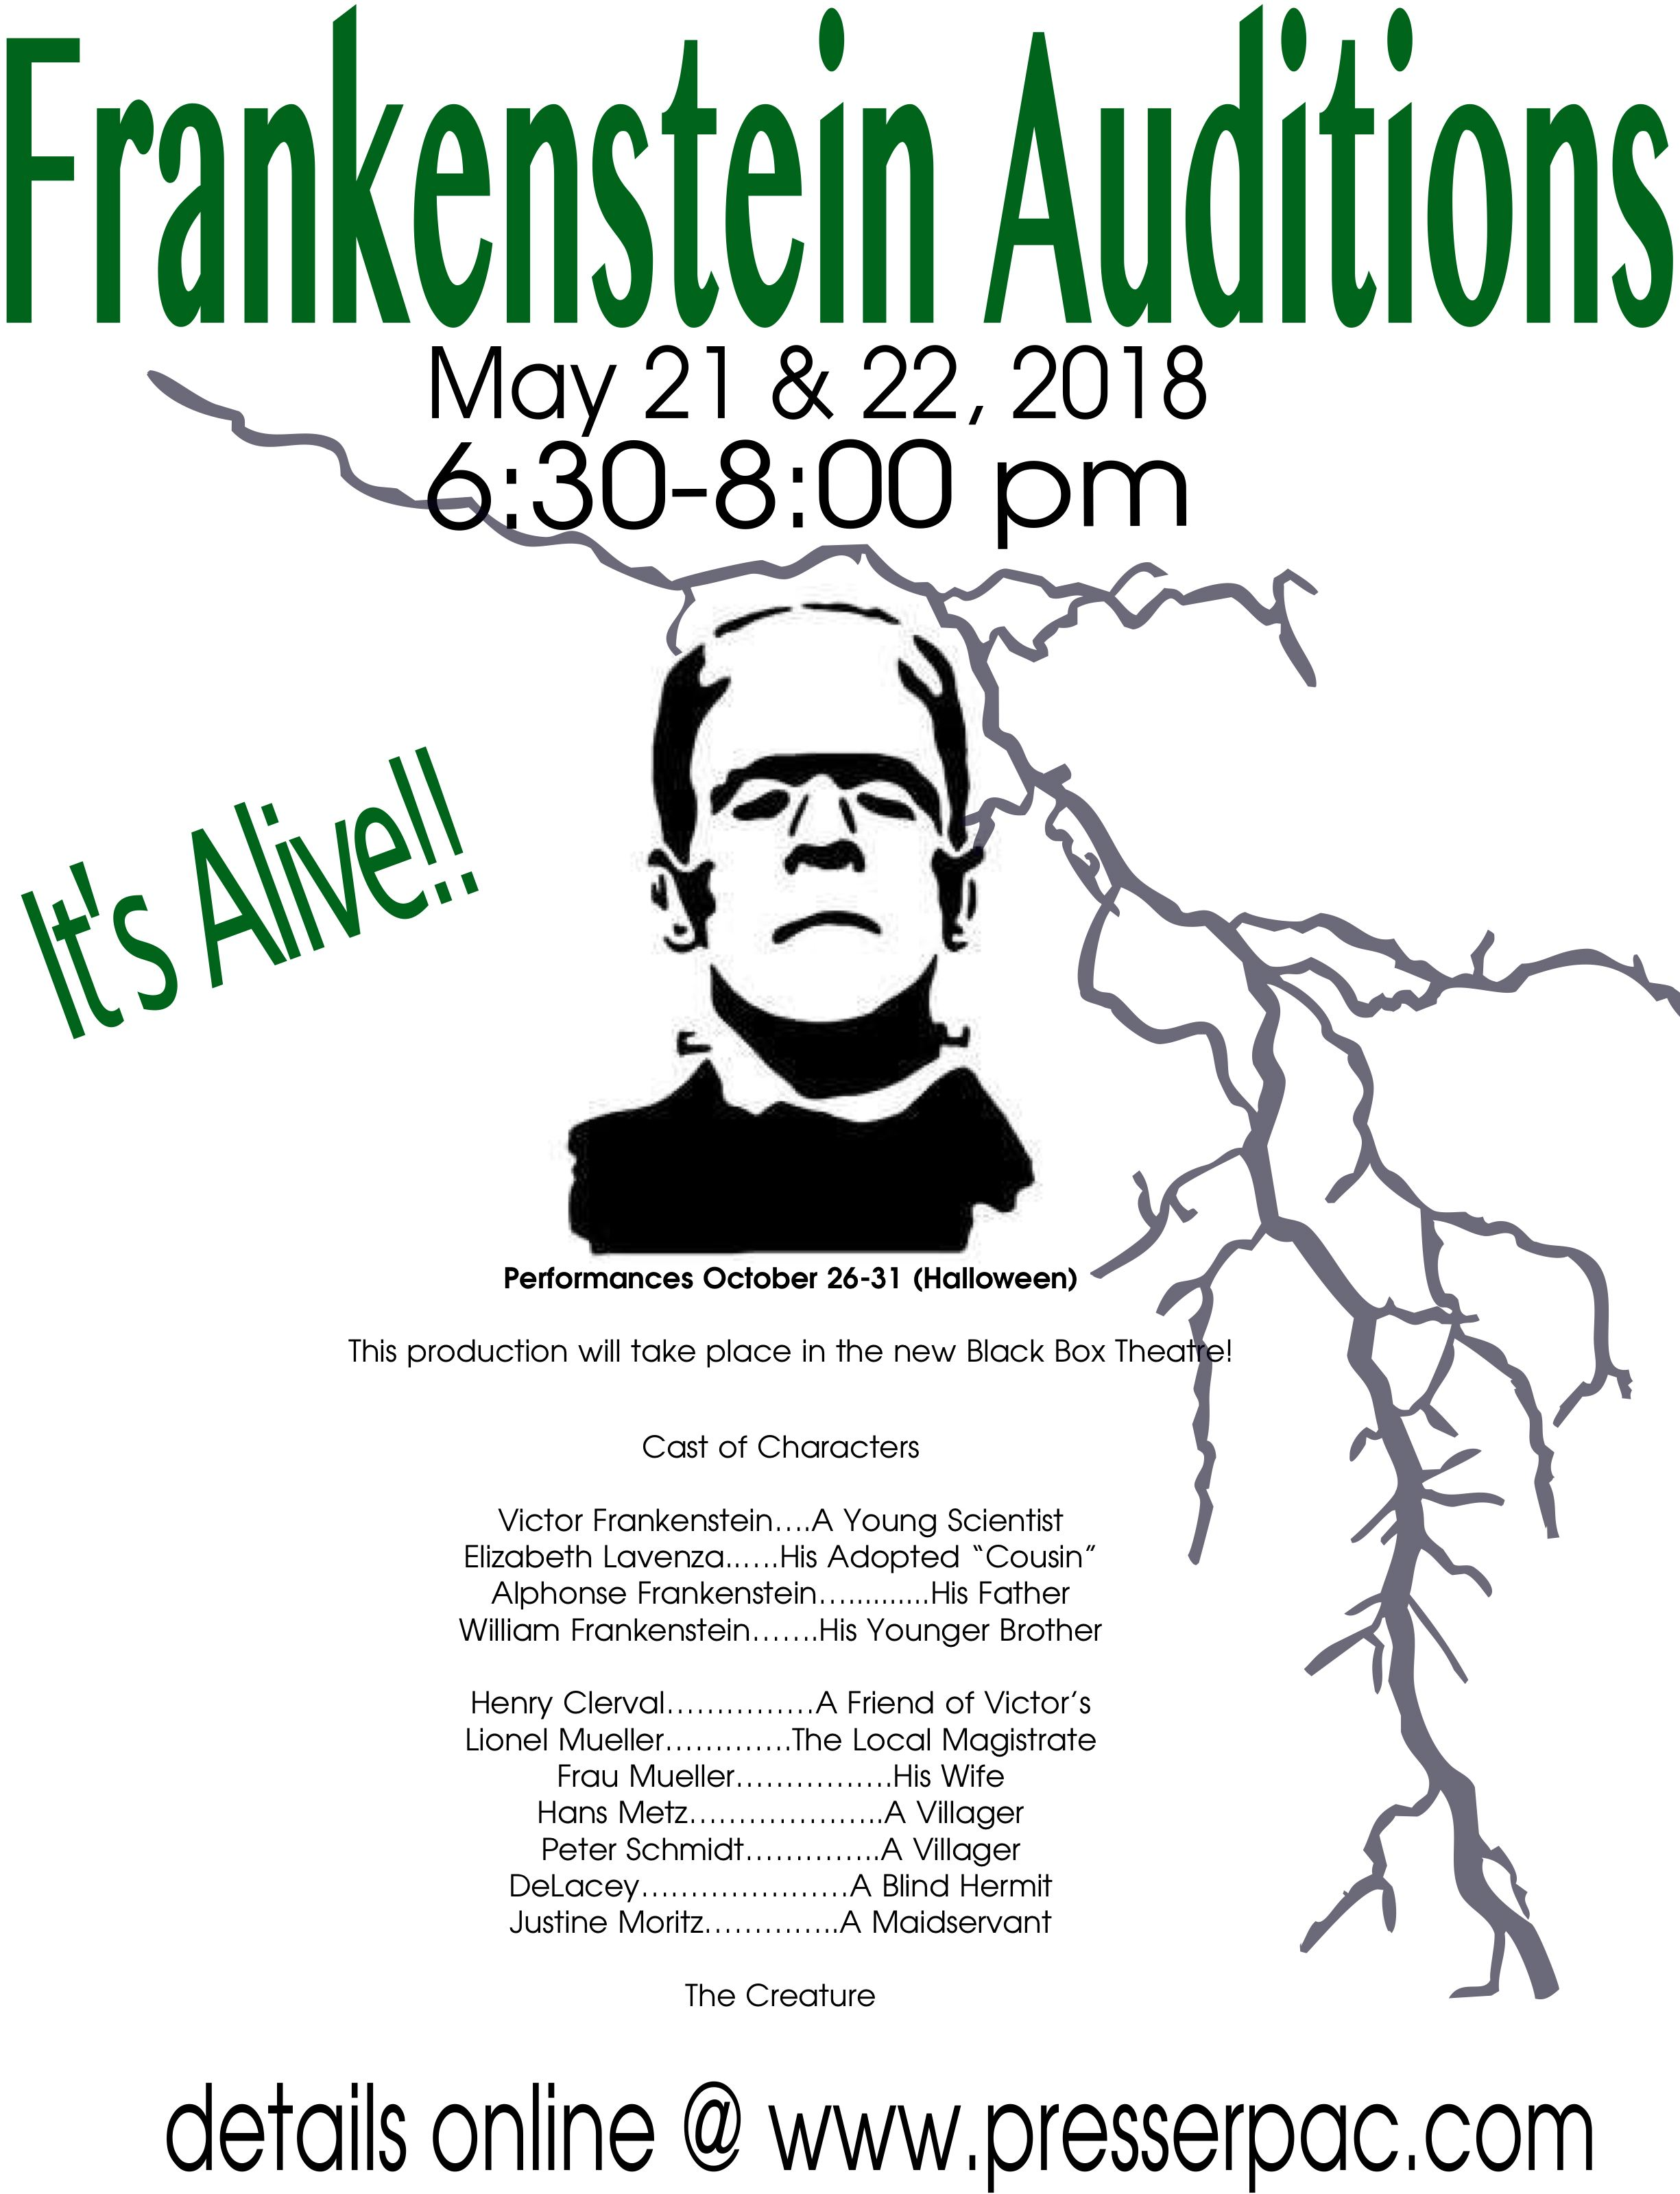 Frankenstein Auditions Poster.jpeg